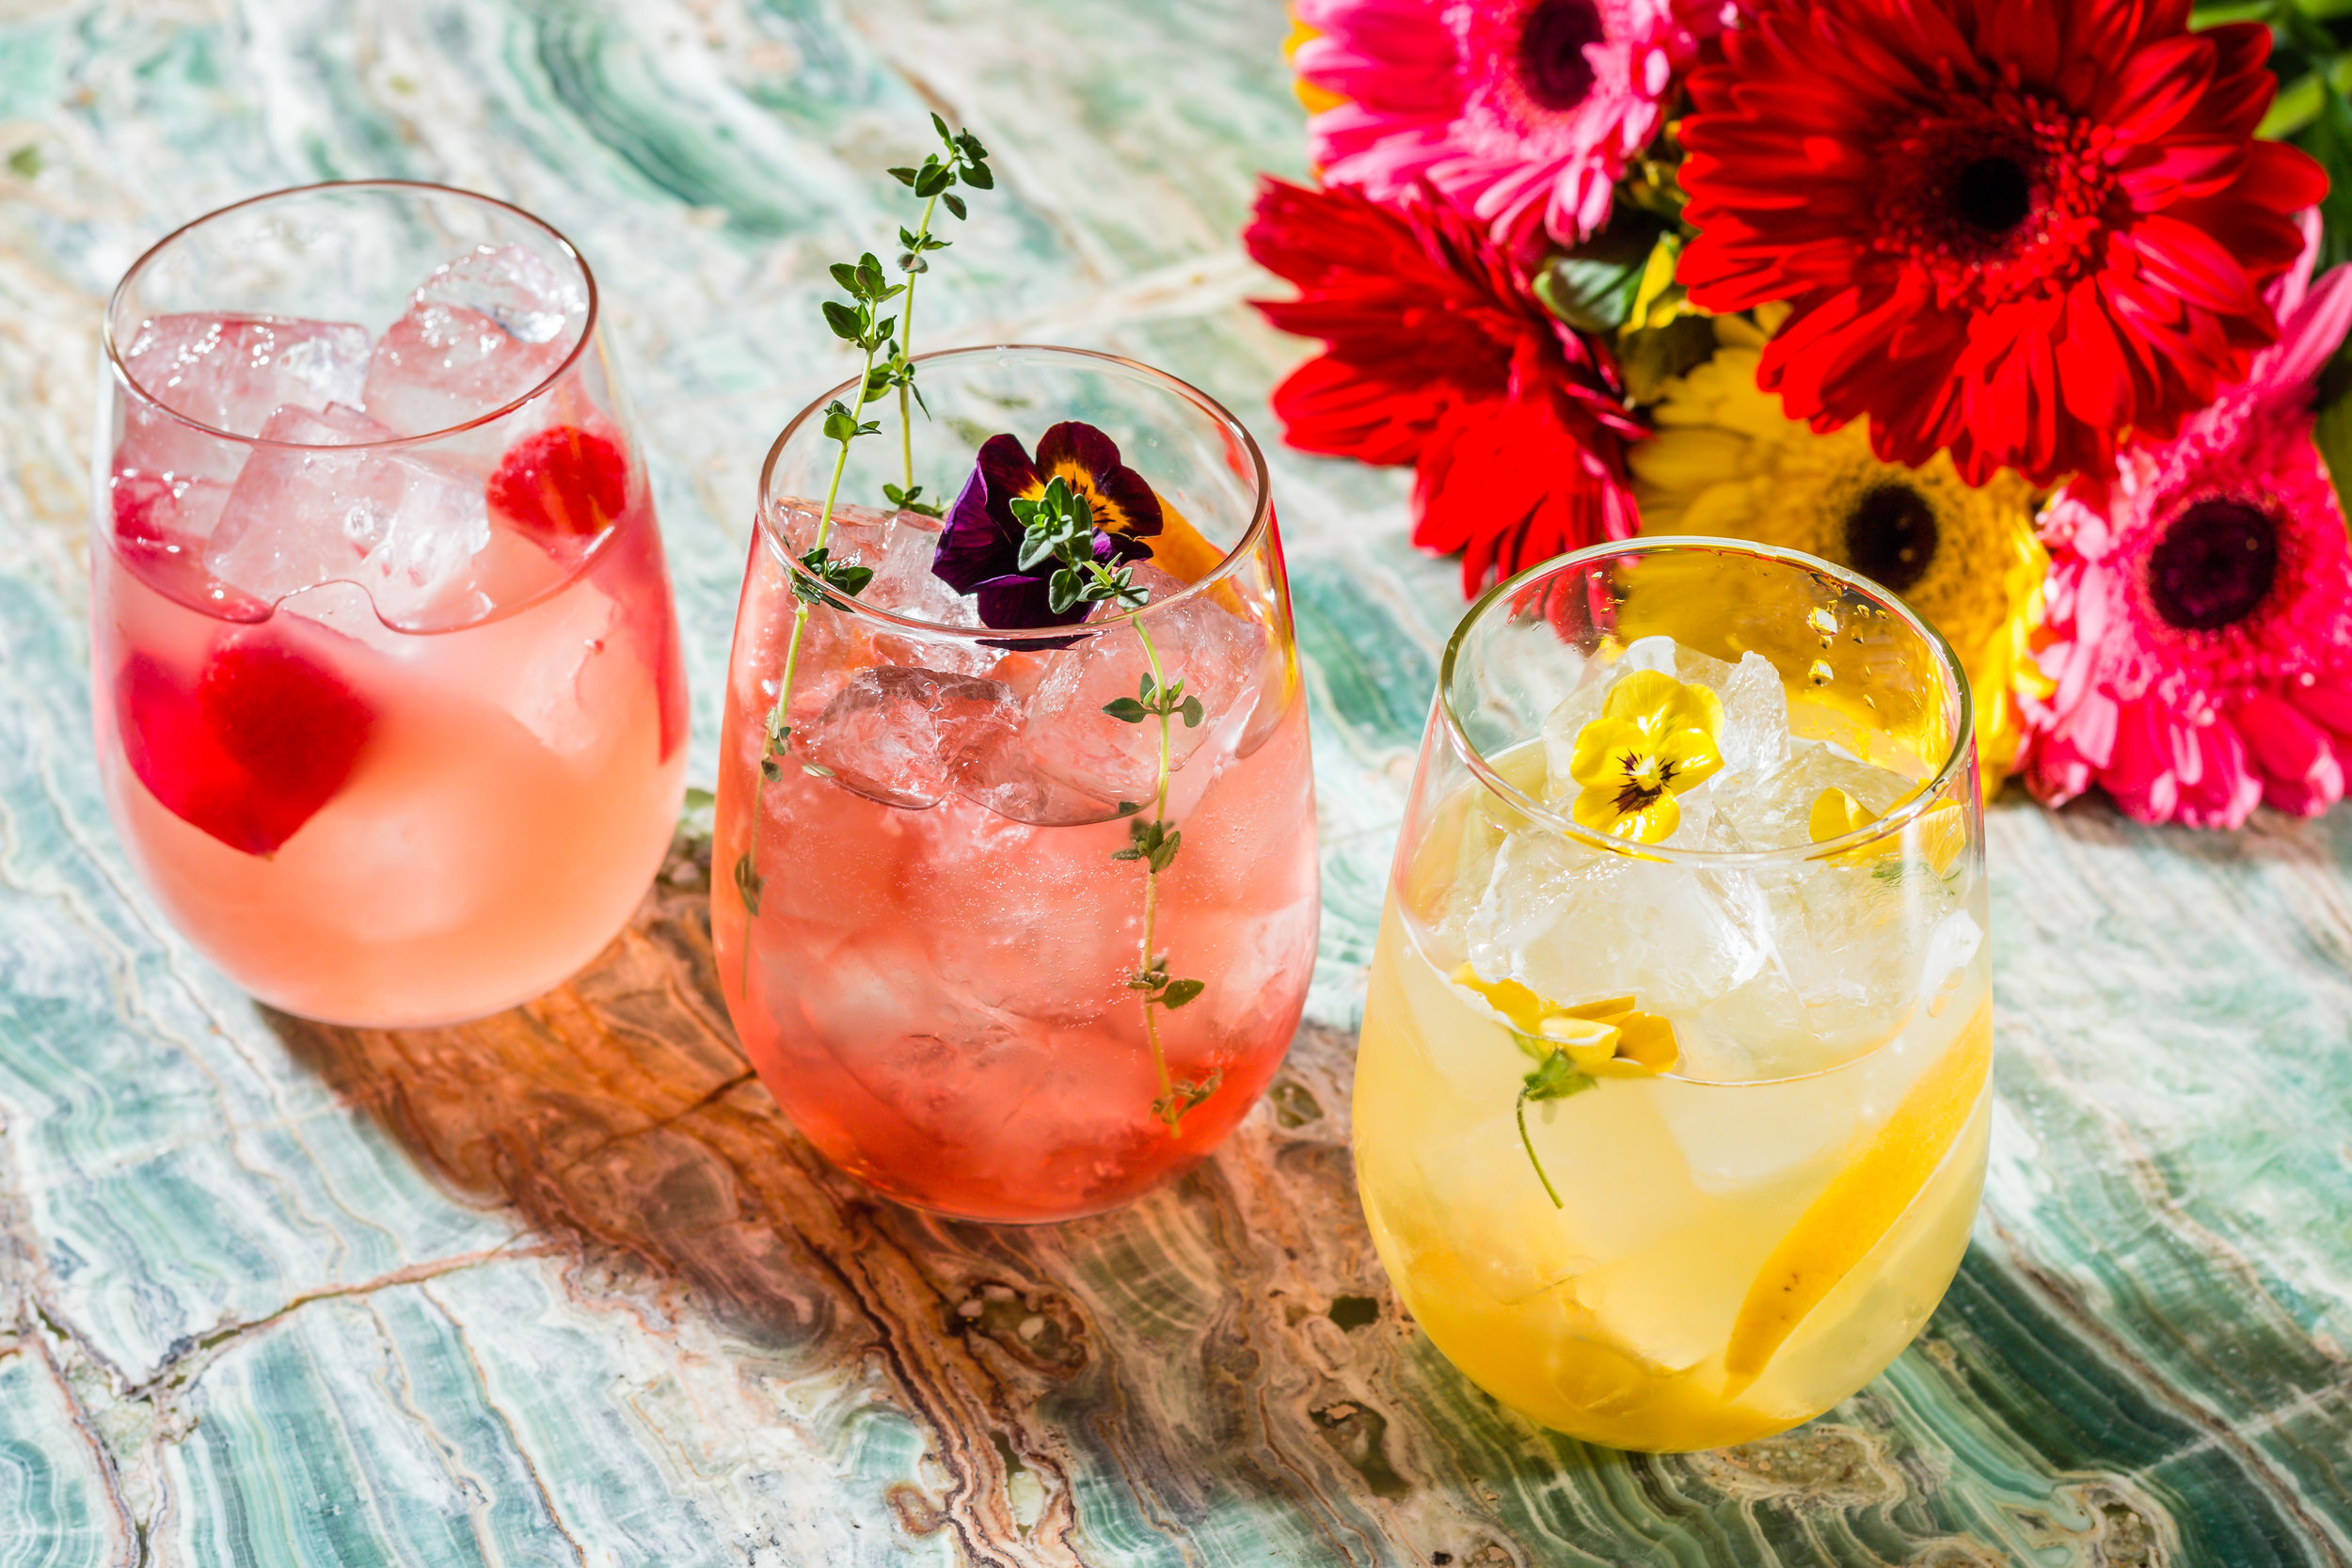 The Floral Spritz Collection at May Fair Kitchen